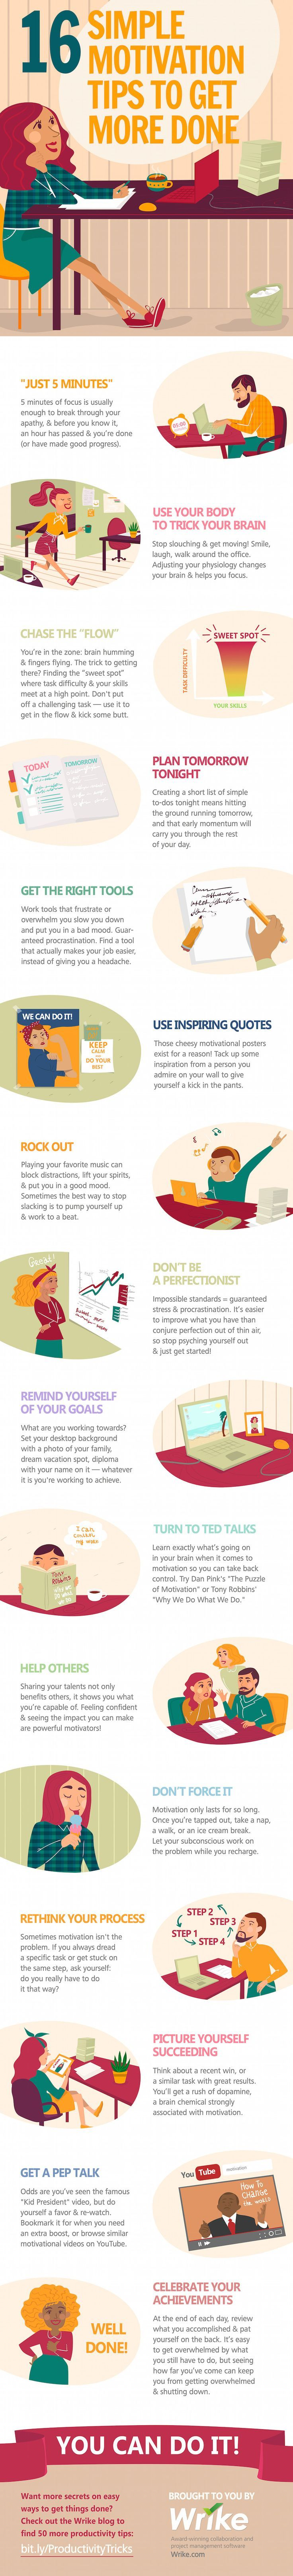 10 steps how to use stress to increase your productivity motivate - 16 Best Ways To Motivate Yourself